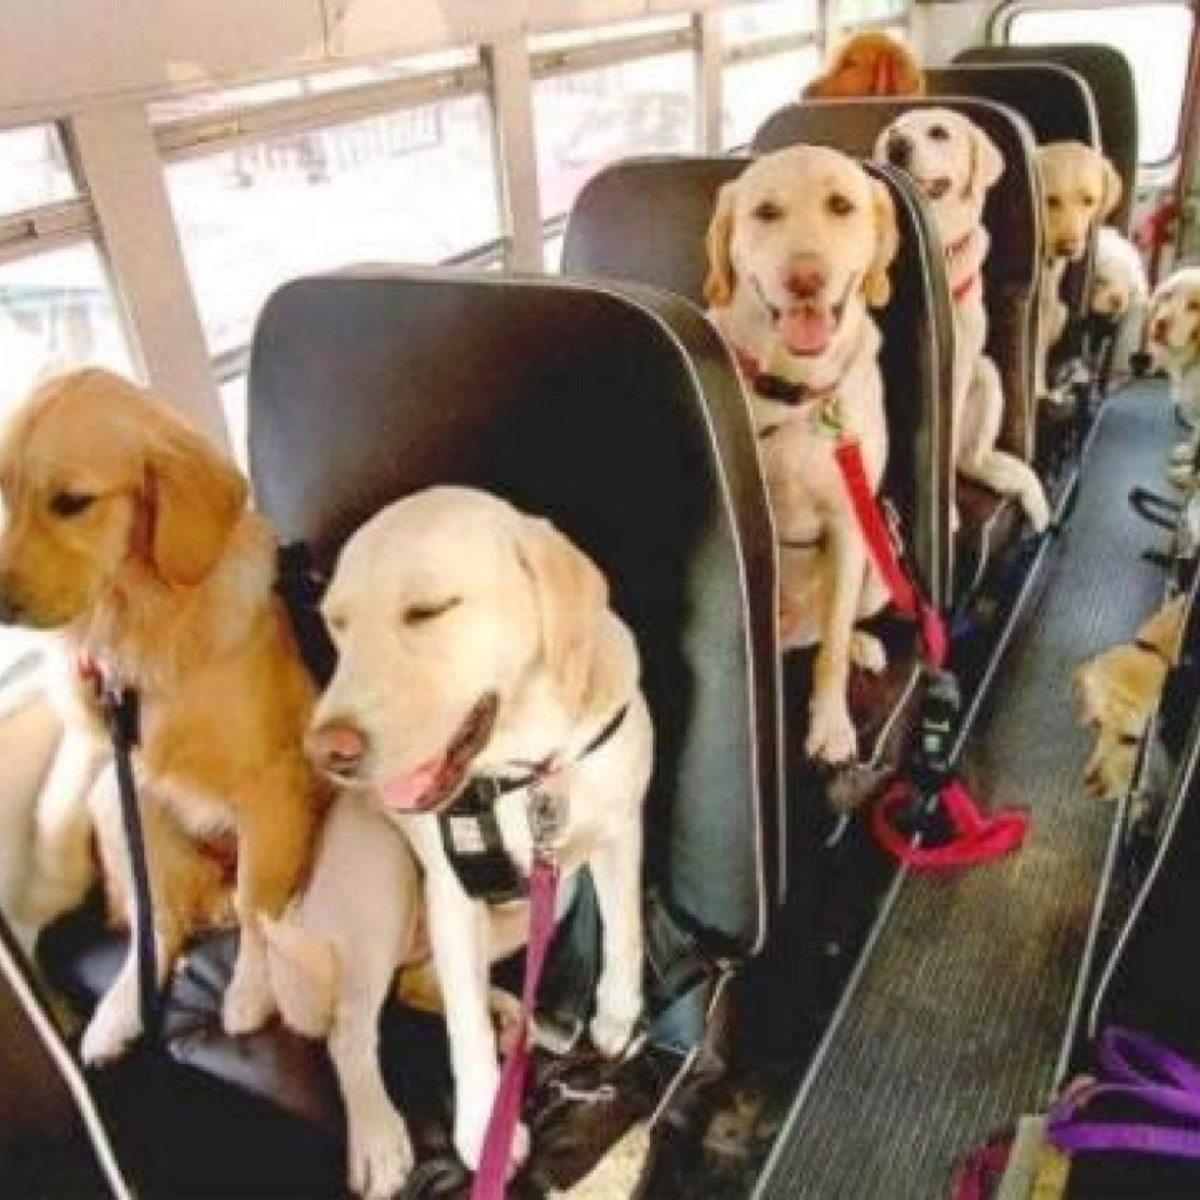 Tour bus designed specifically for dogs launches in London  http:// ow.ly/L6pB3080bM0  &nbsp;   #canine #dogs #doglovers #puppies #animallove #k9 #london<br>http://pic.twitter.com/rNX7sWkeIR